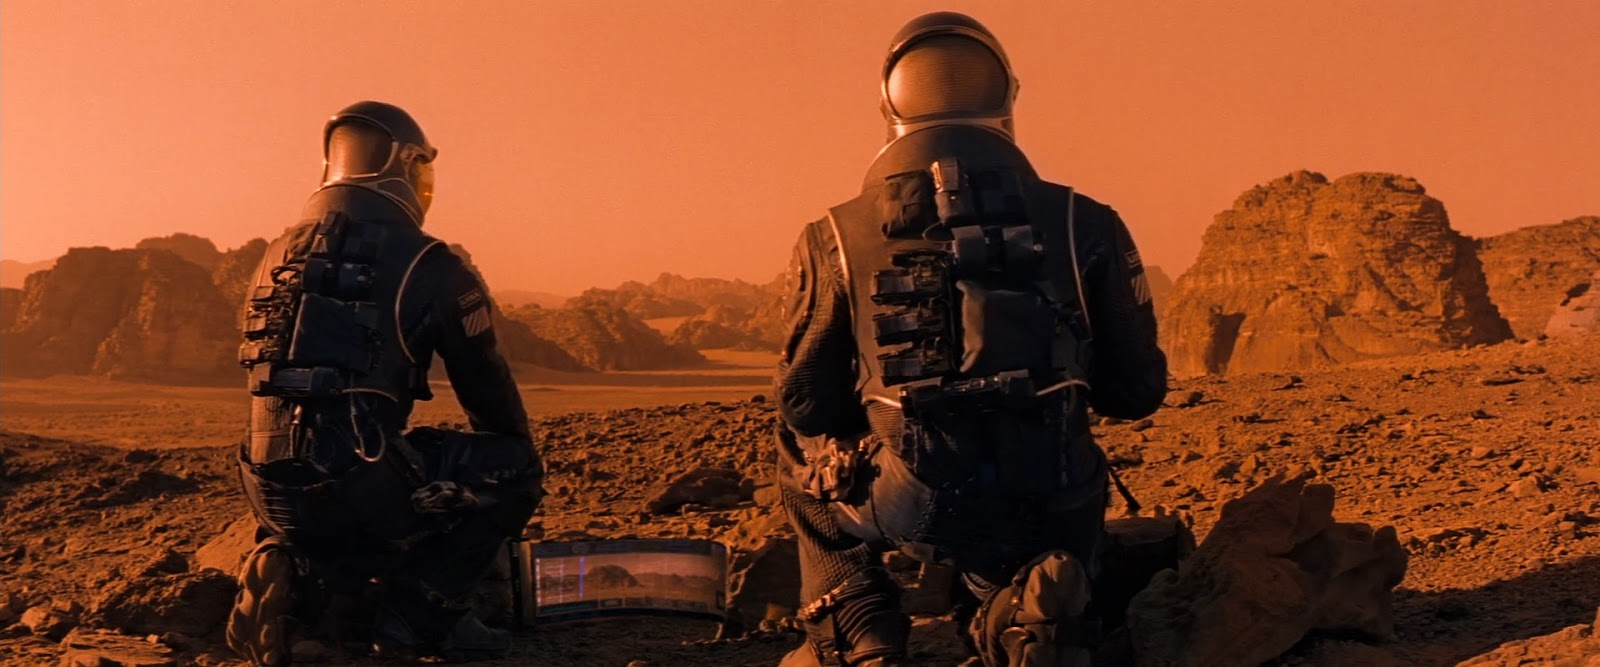 human Mars: Mars movie review - Red Planet (2000)